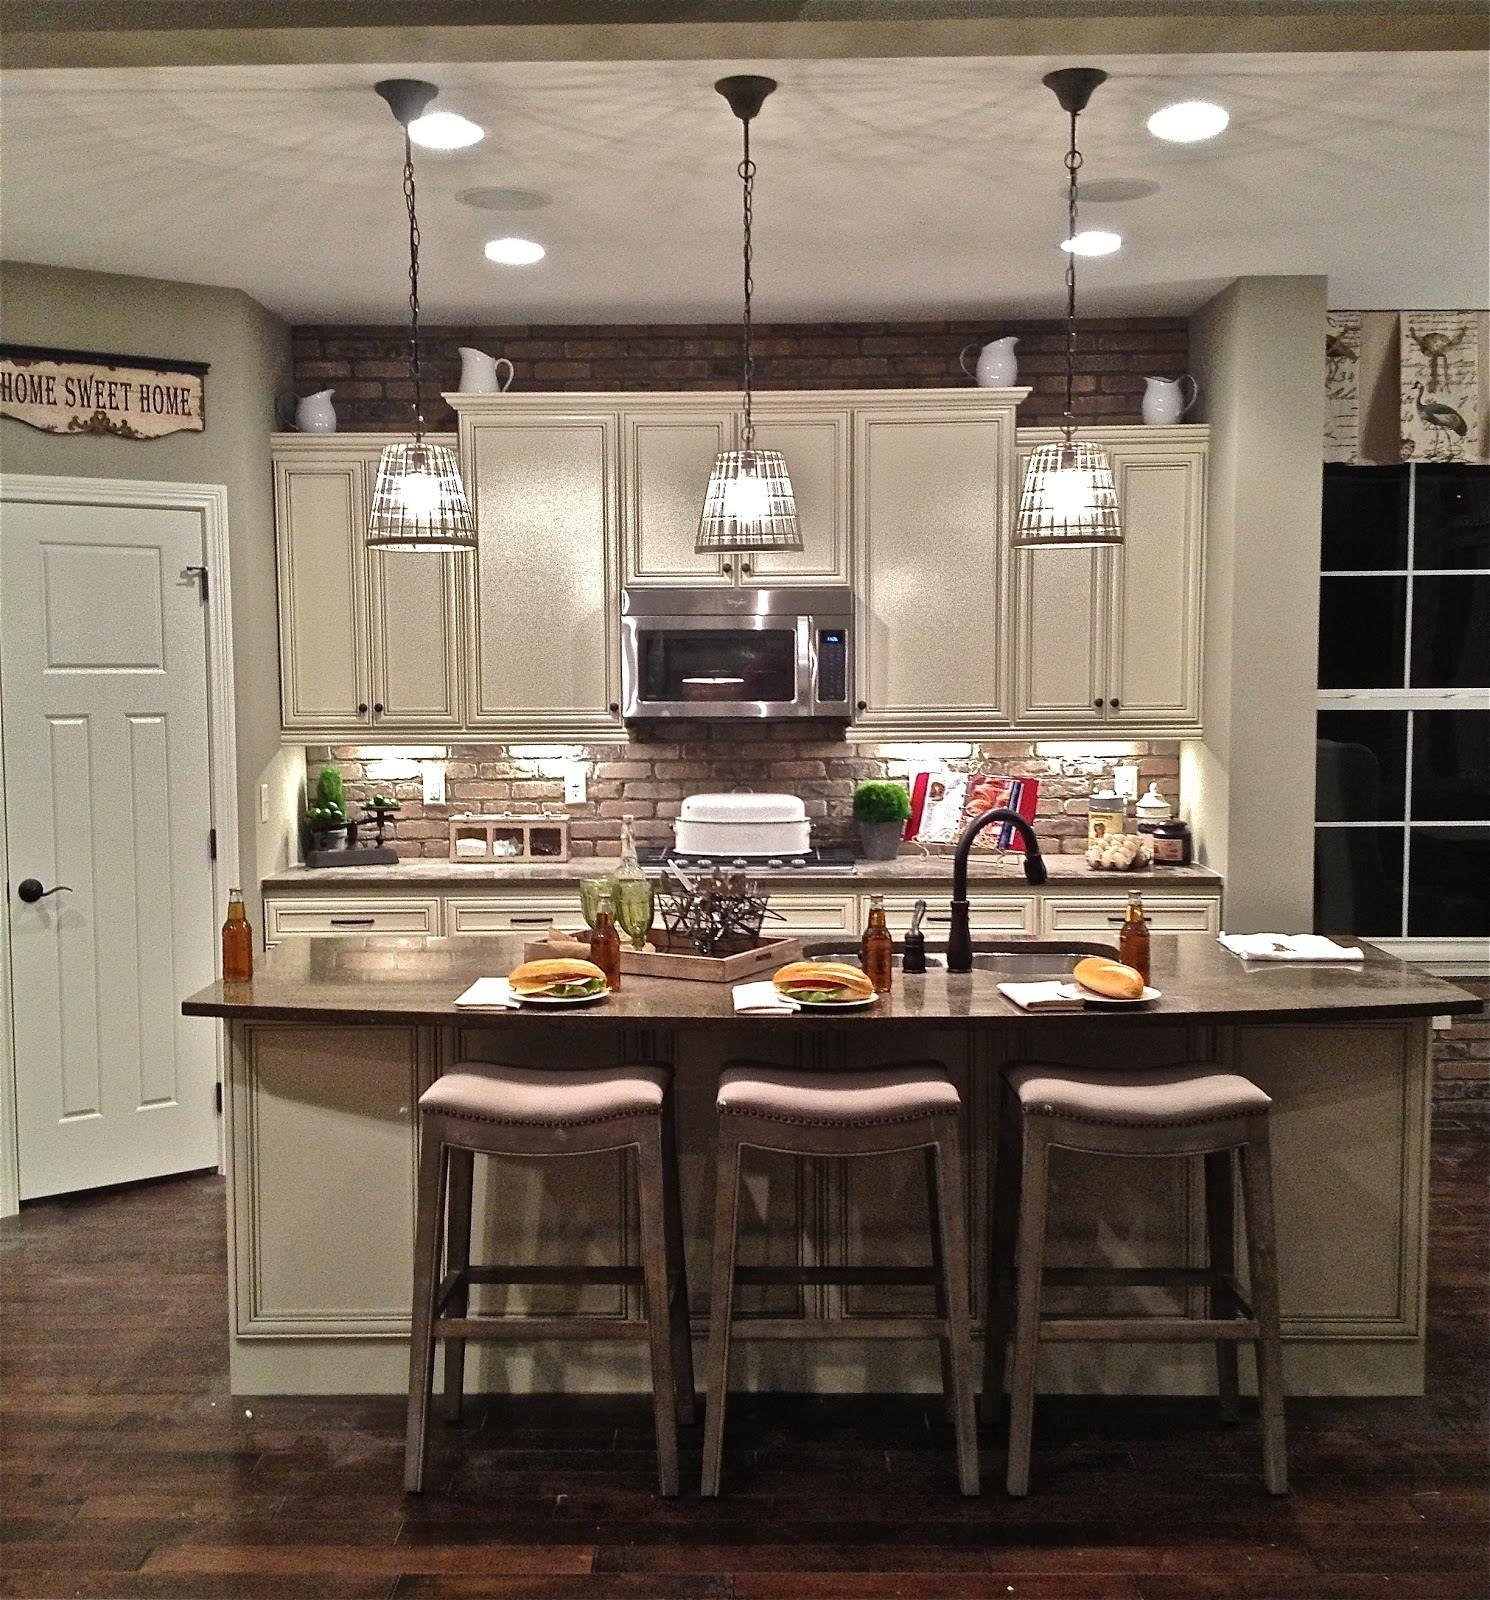 10 Most Recommended Kitchen Island Pendant Lighting Ideas top 62 preeminent mini pendant lights for kitchen island hanging